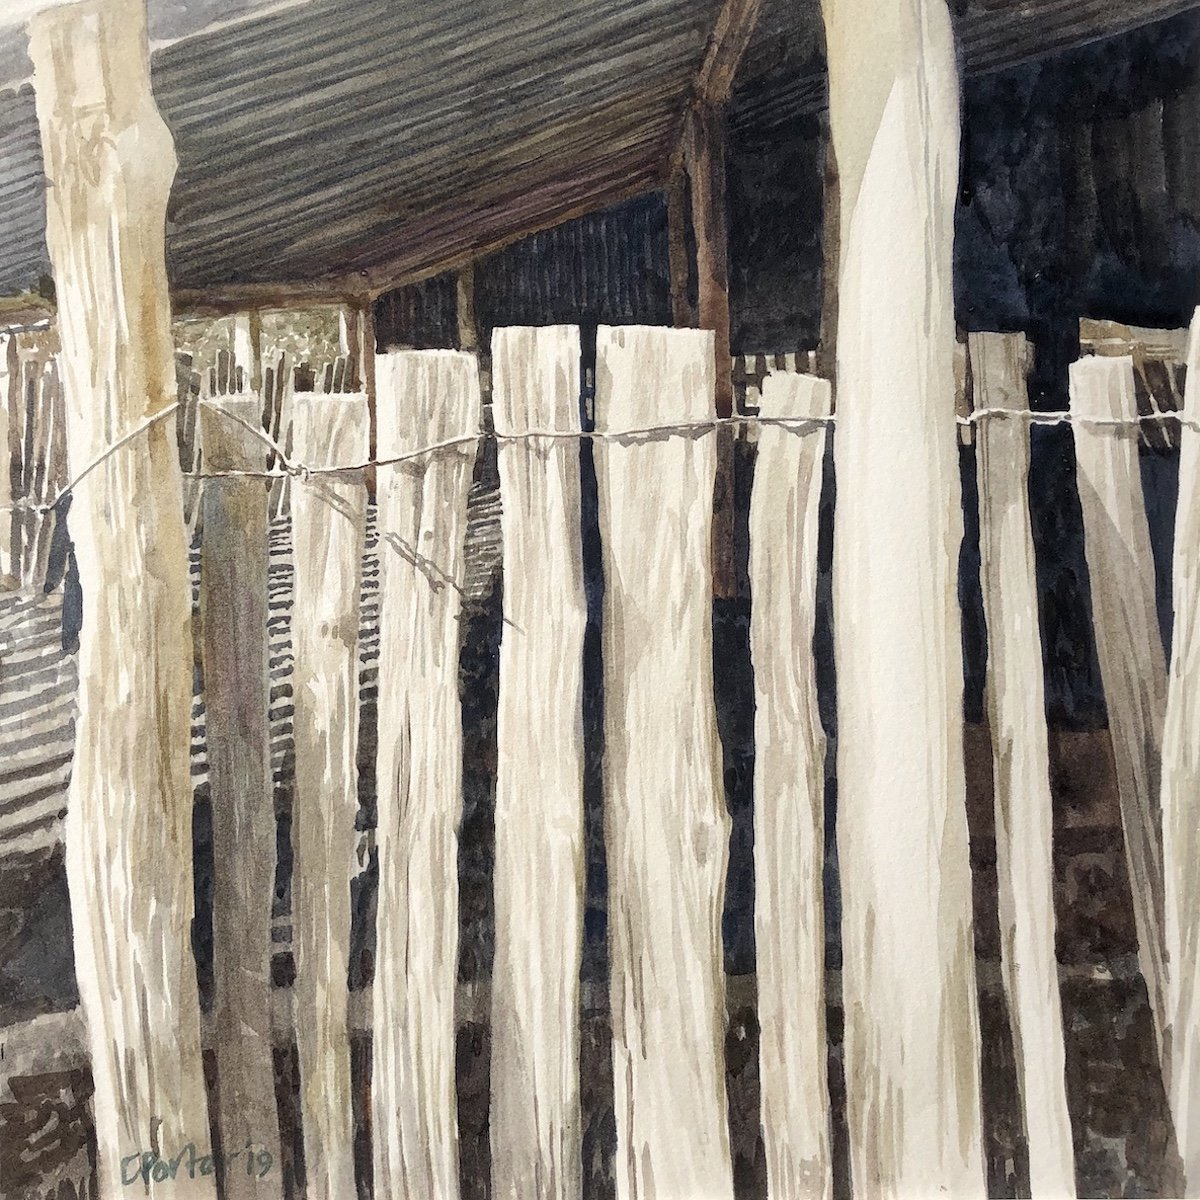 Watercolour painting by Christine Porter showing a tied together fence of slabs being a low wall in a weather shed in an old shearing shed